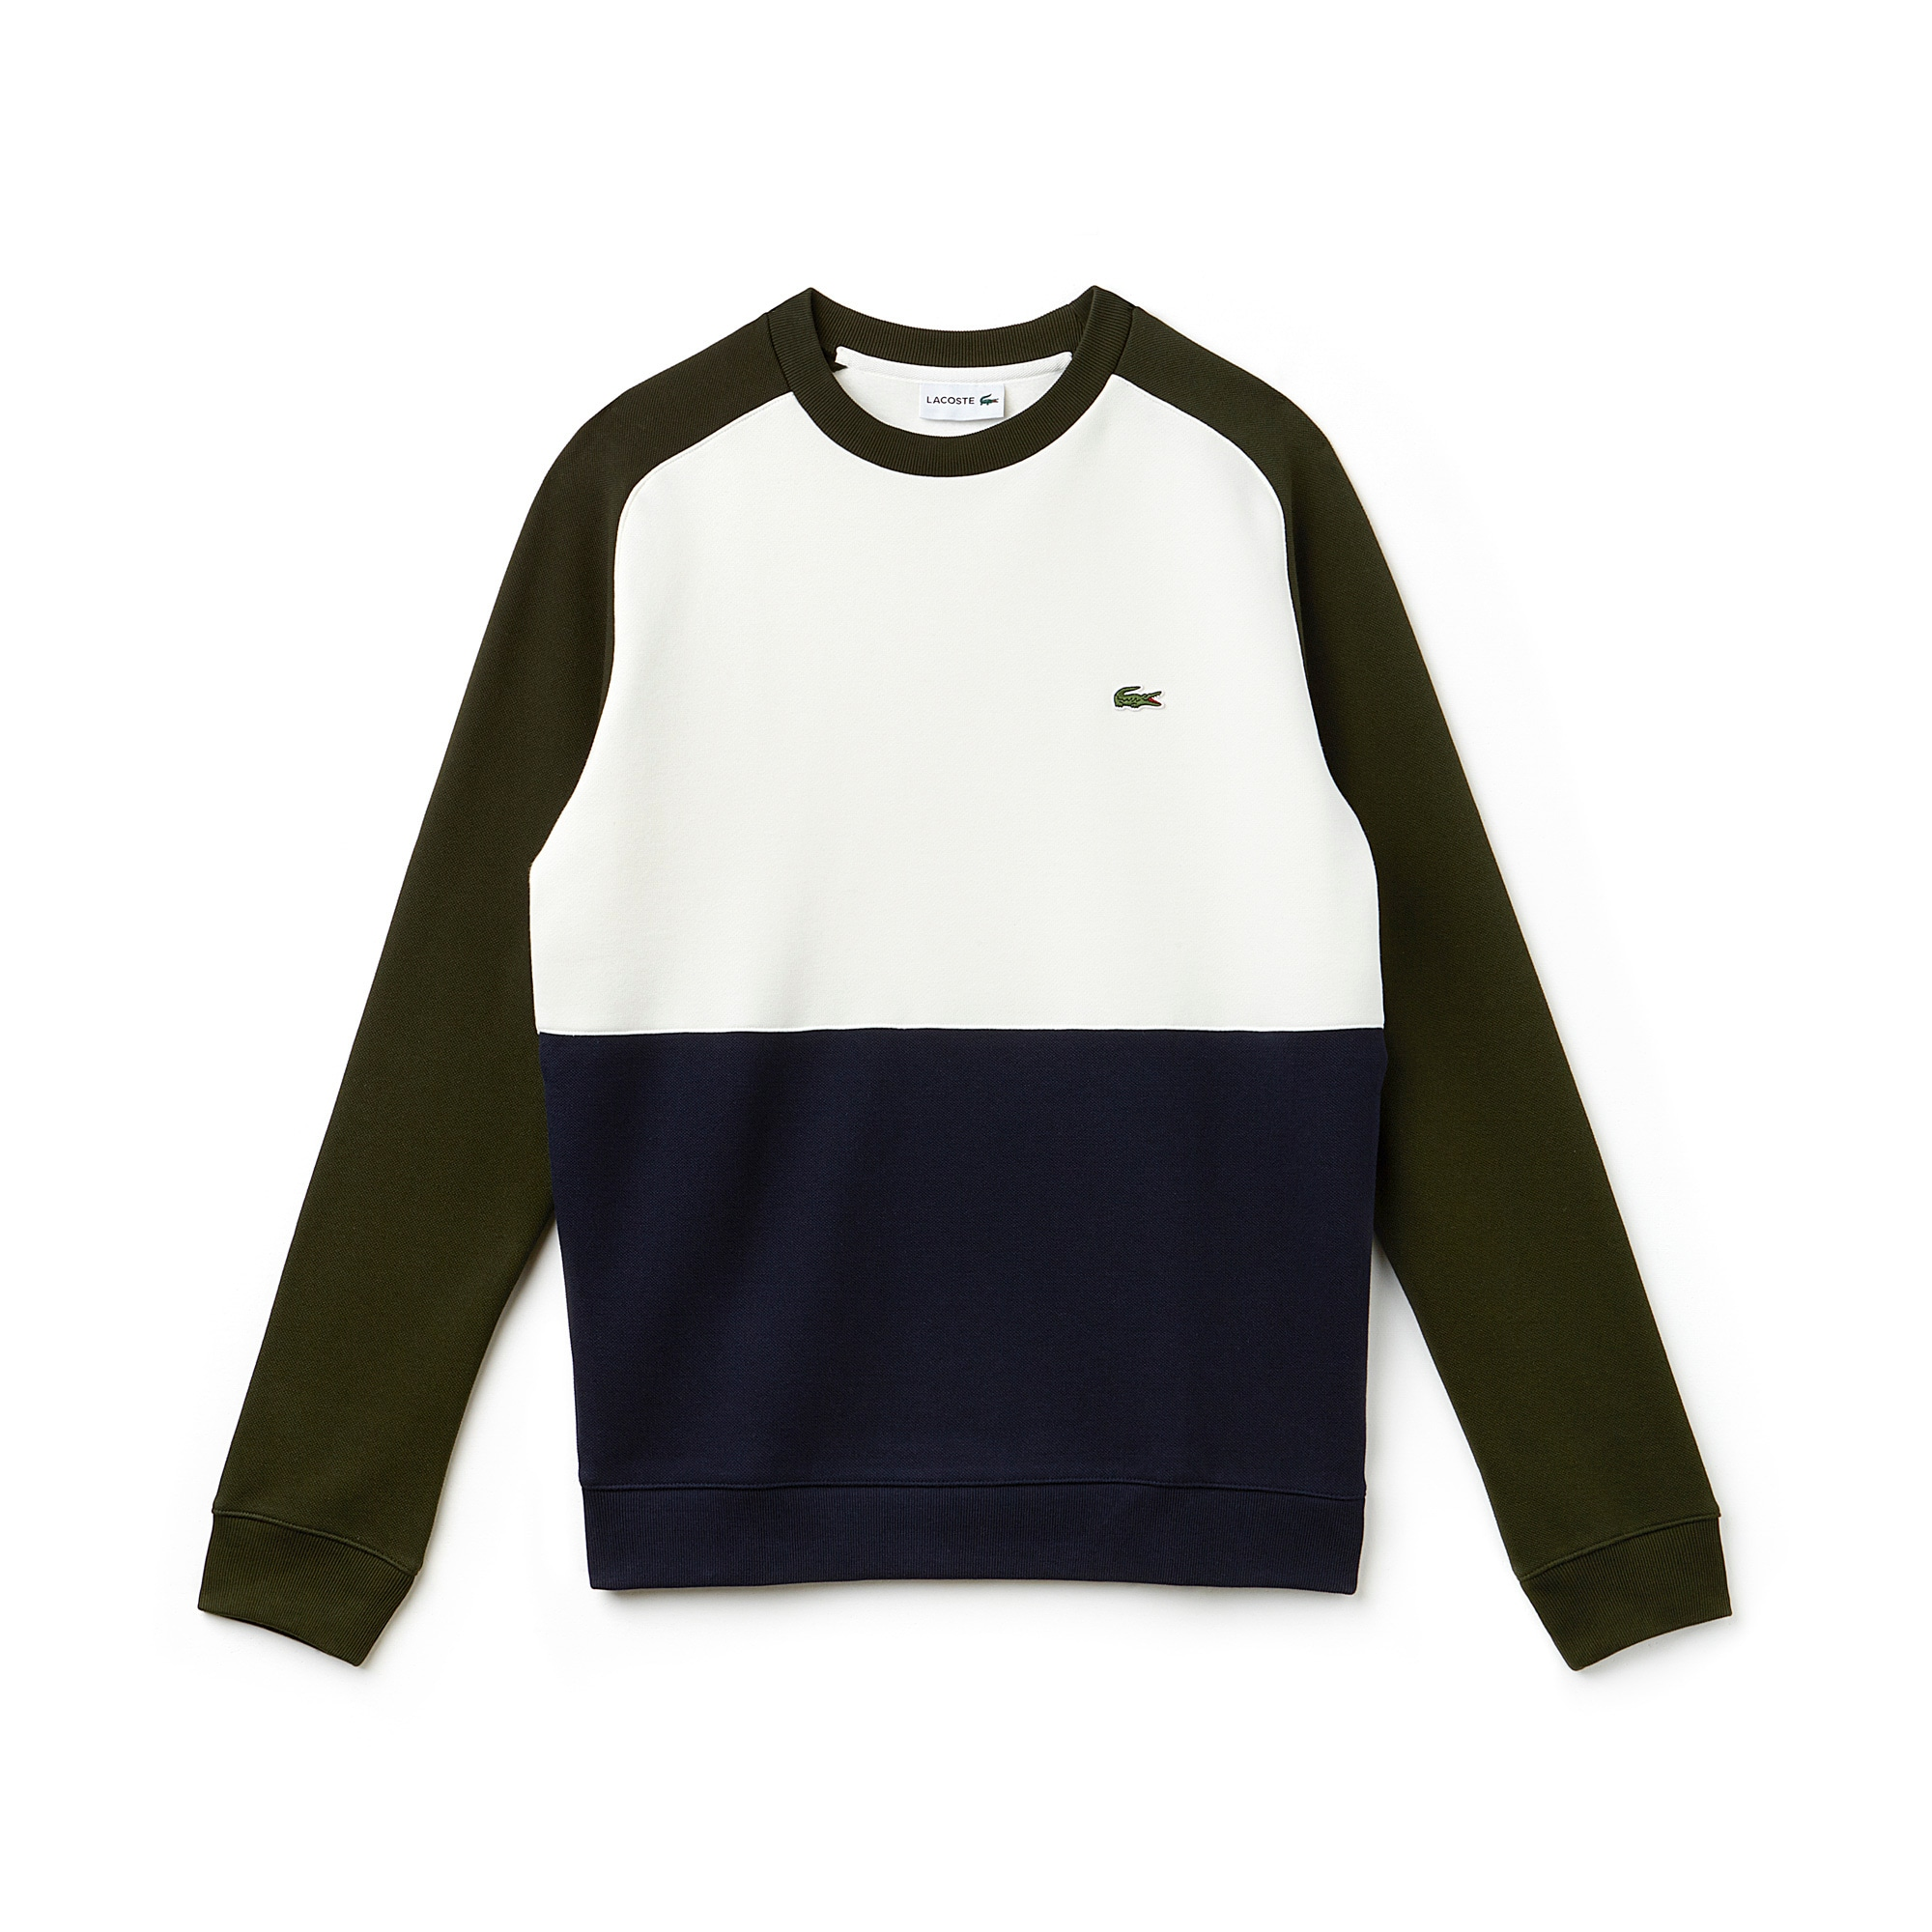 Men's Colorblock Cotton Piqué Fleece Sweatshirt